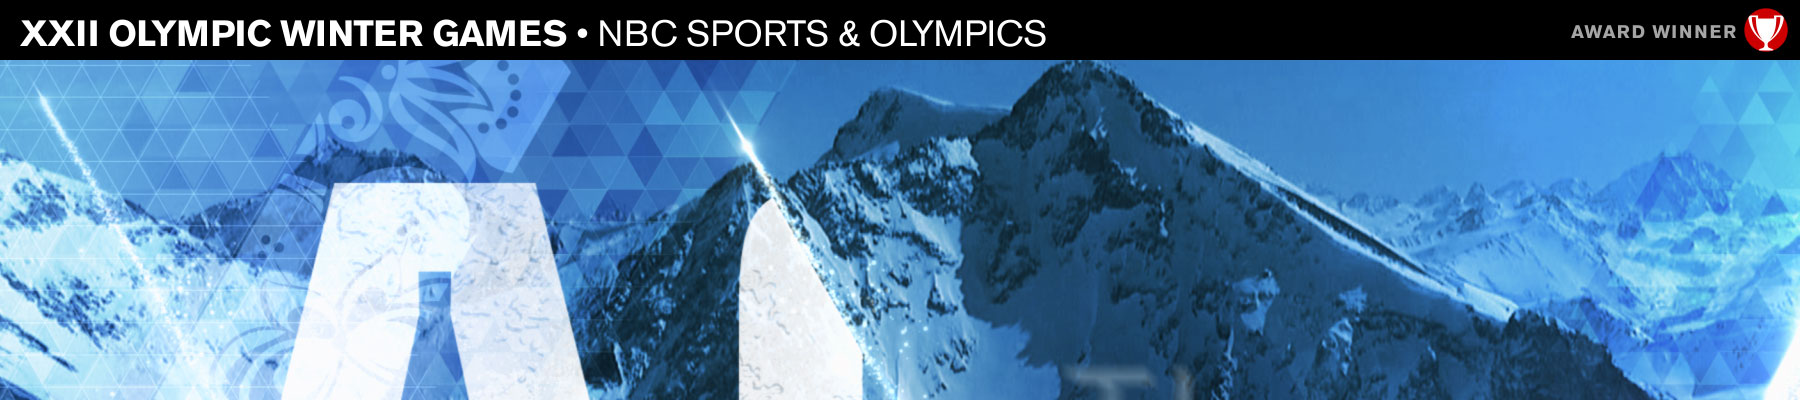 XXII Olympic Winter Games • NBC Sports & Olympics